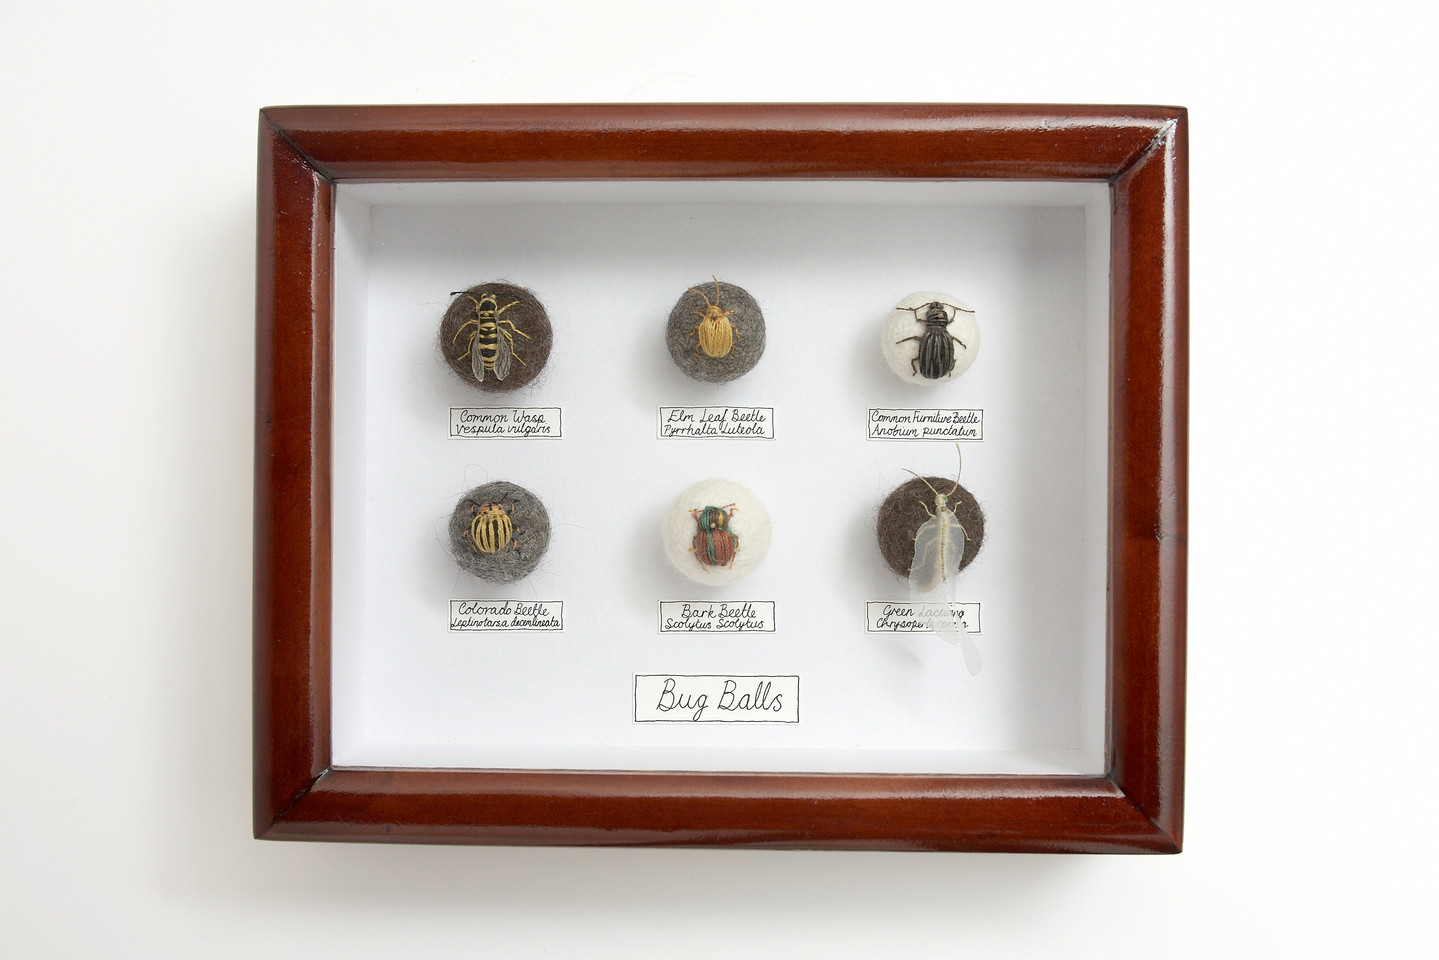 Six Bug Ball Collection